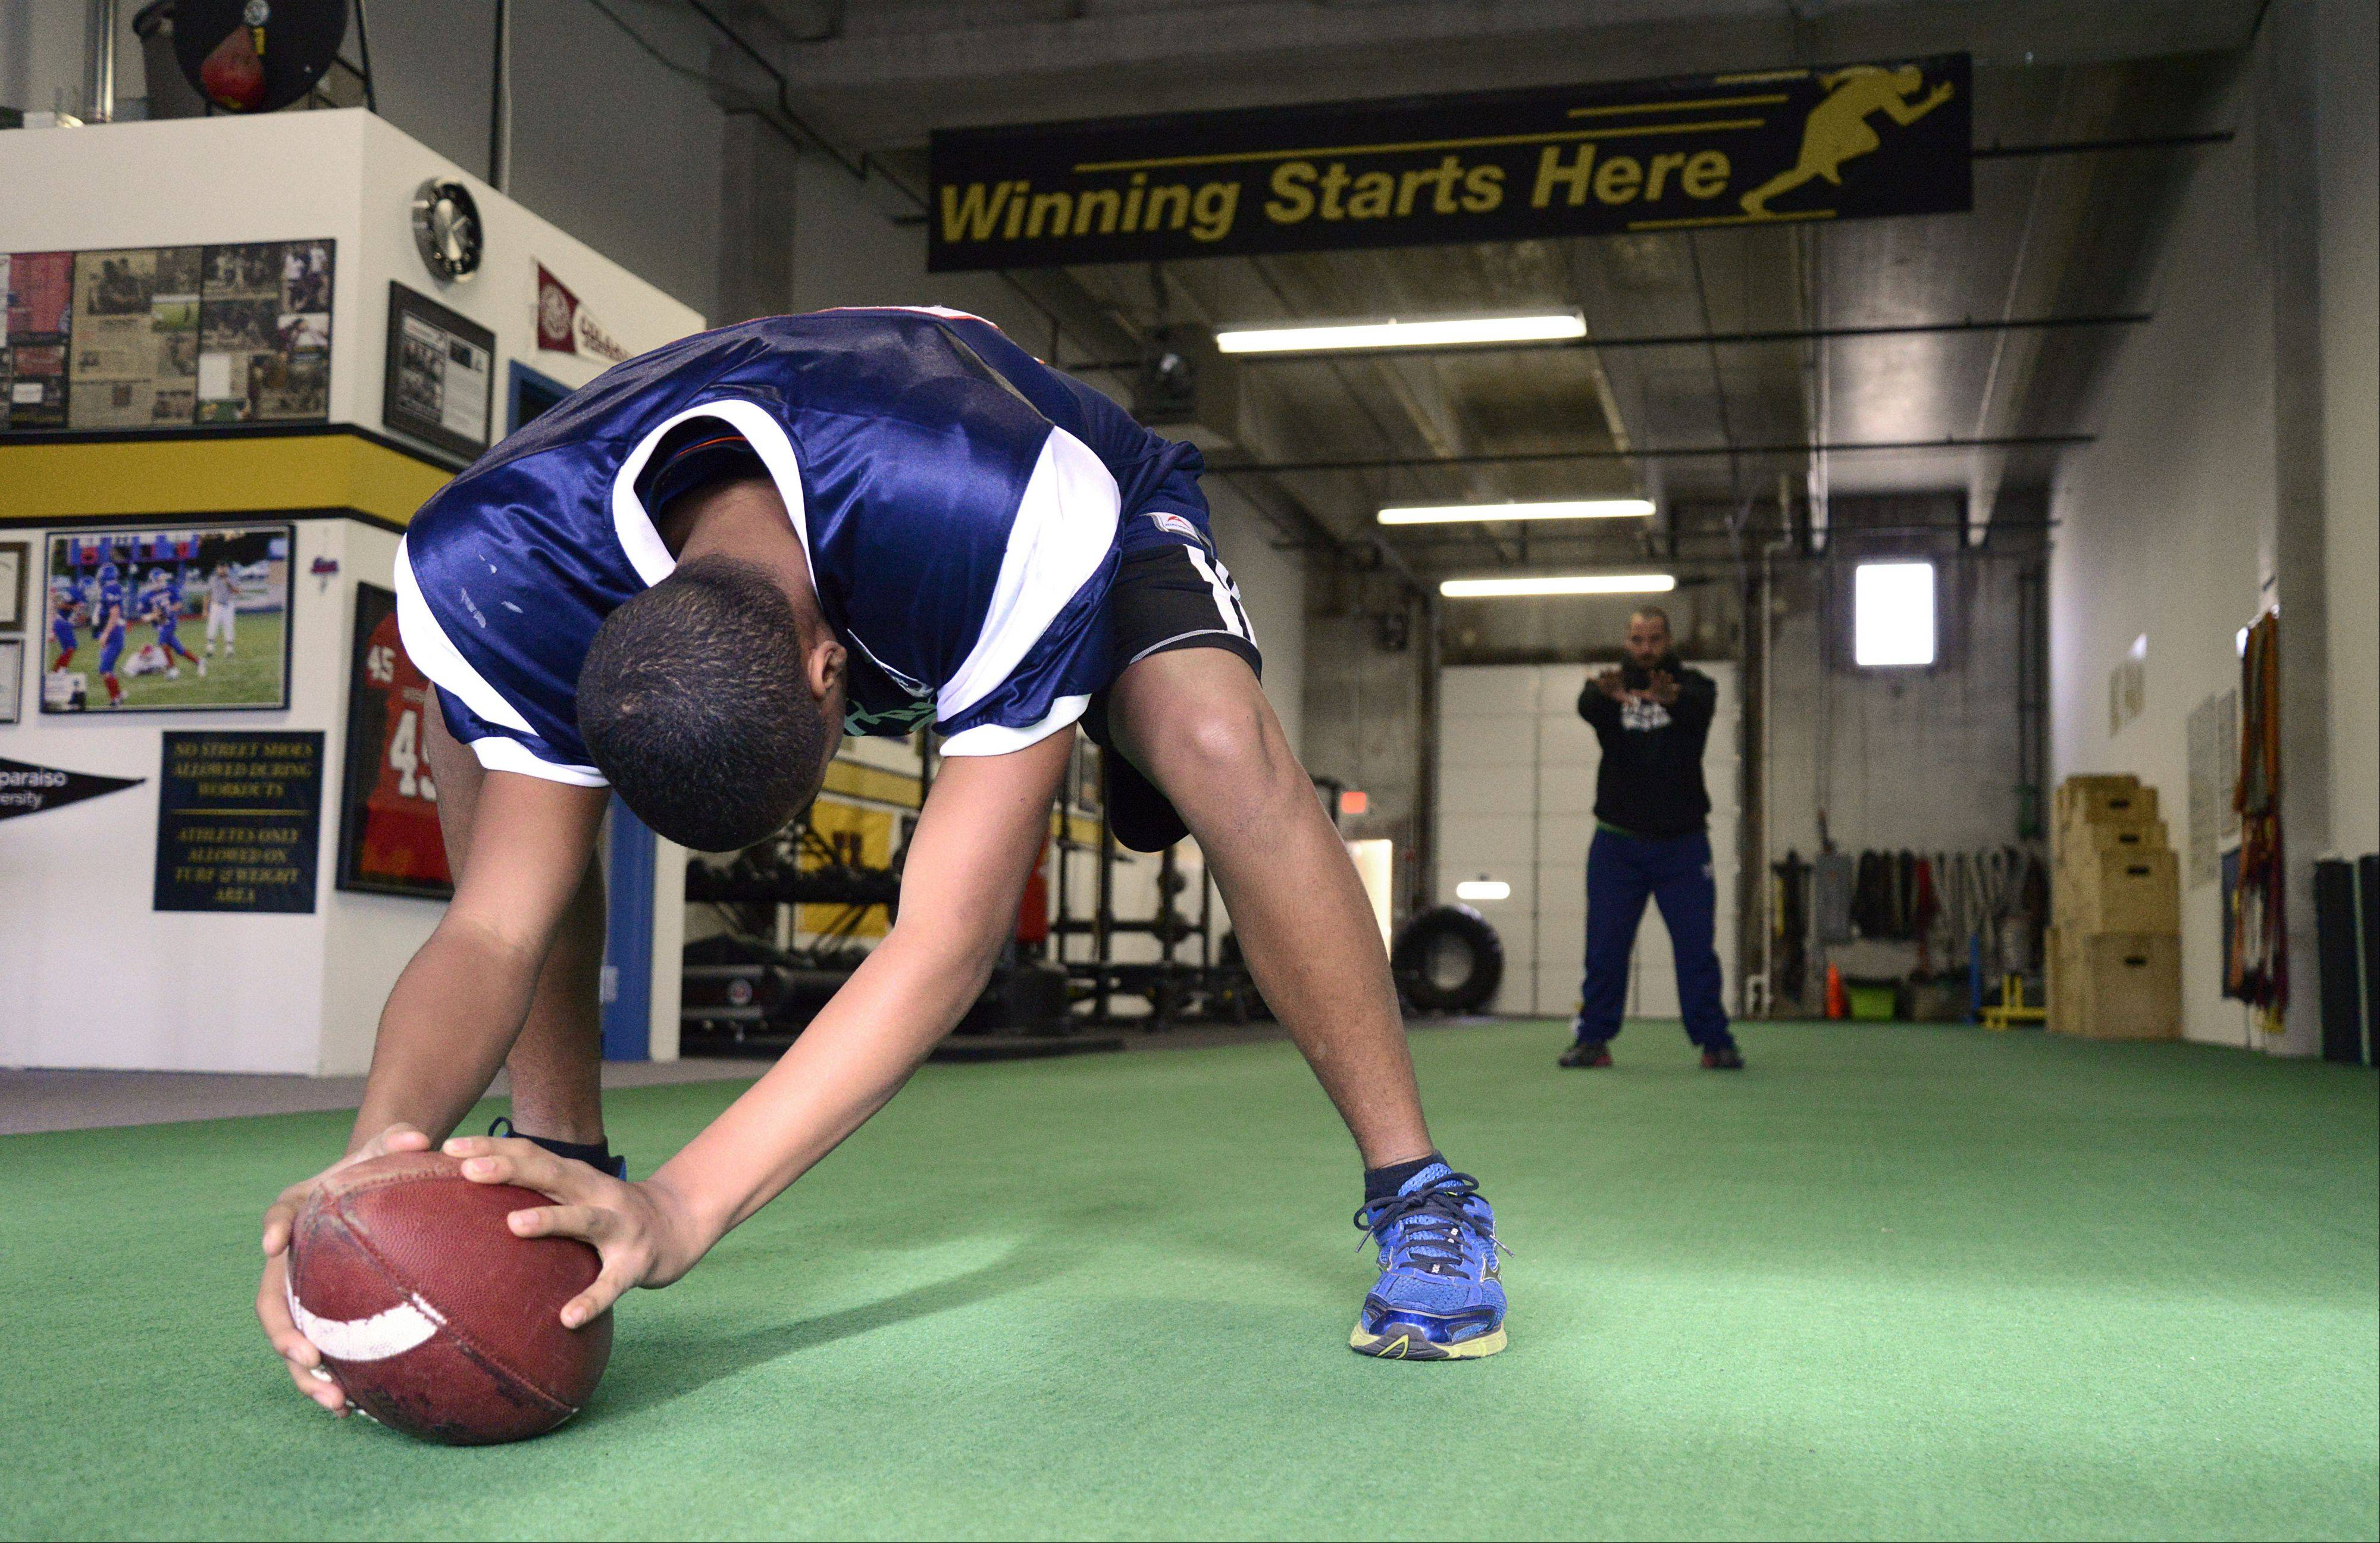 John Davis Jr. of South Elgin practices with Speed School trainer and owner, Joe Giustino, twice a week in St. Charles. John is among the nation's best football long snappers in his age group. He played in the 2013 JuniorRank Academic All-American Game on Jan. 4 in Carson, Calif.